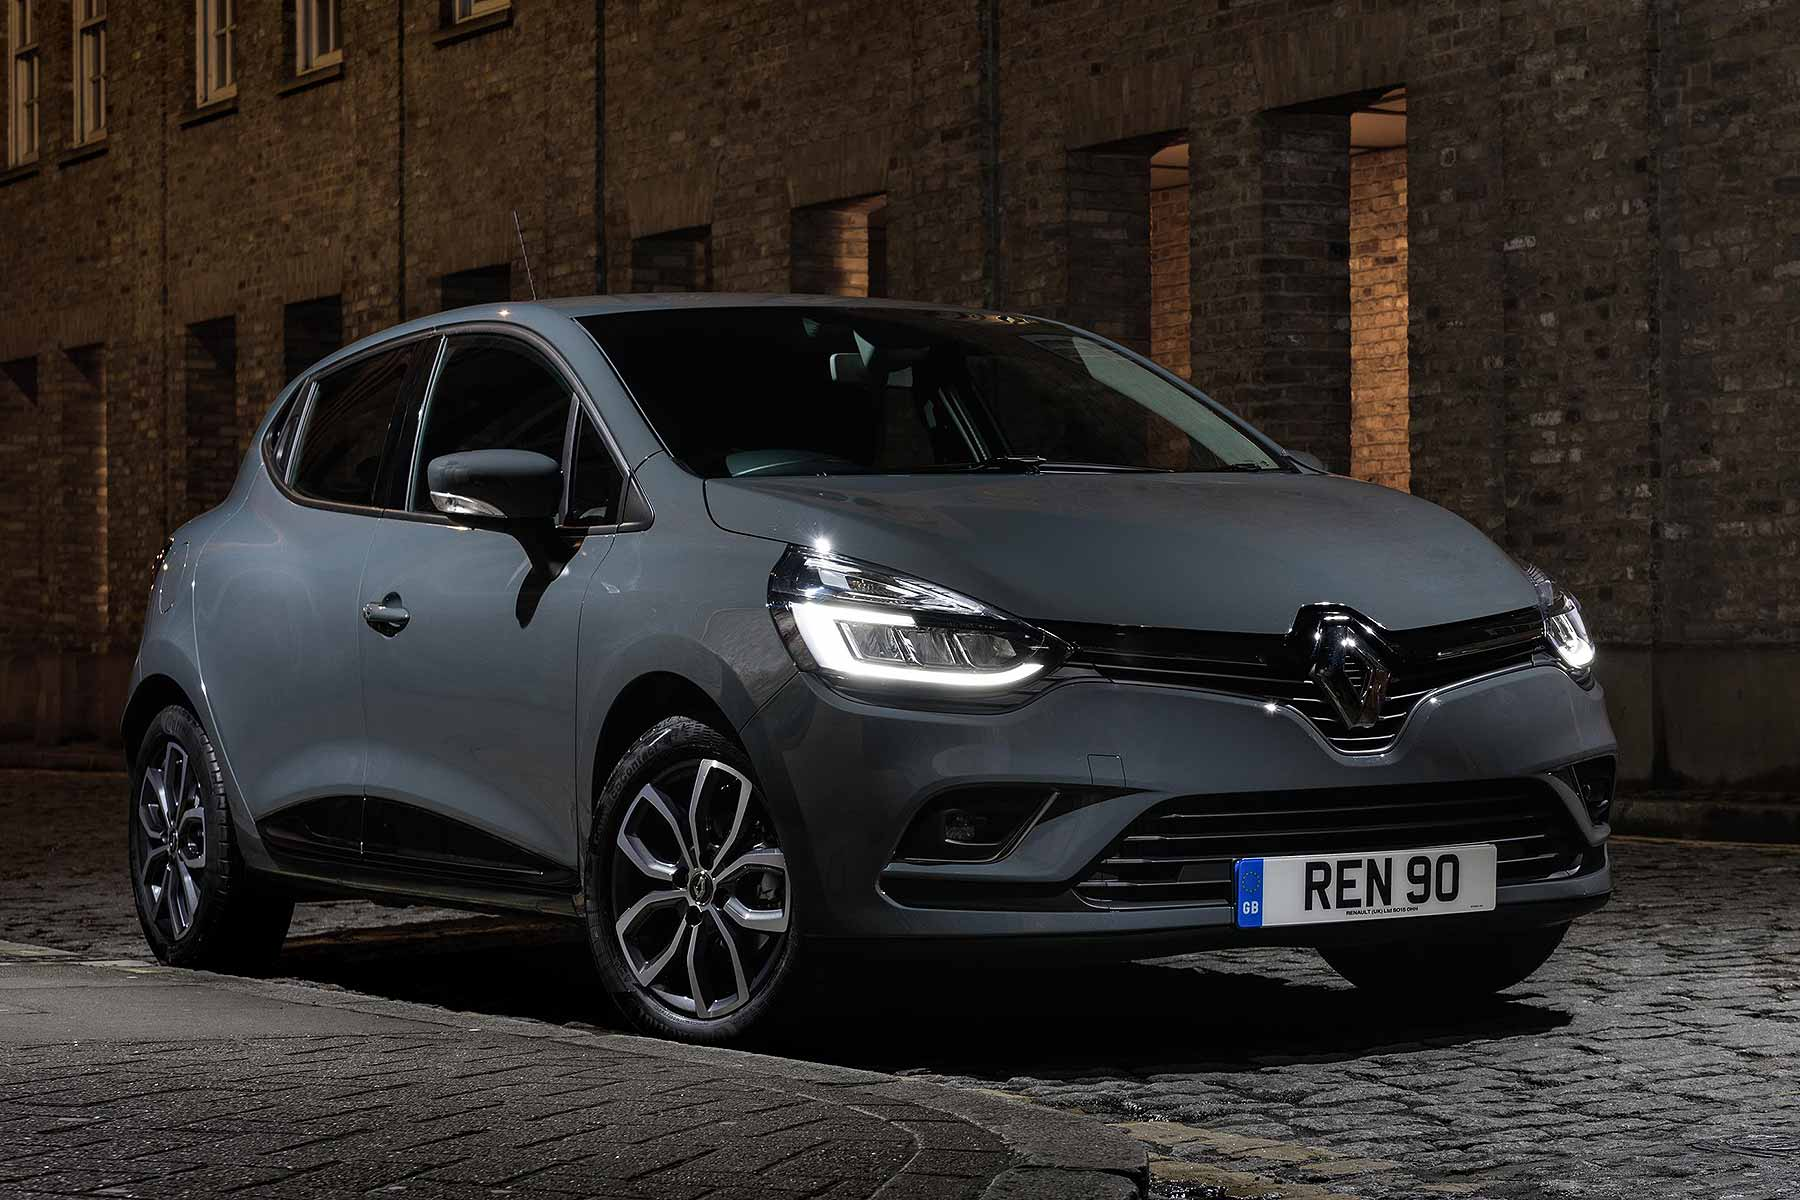 renault clio urban nav special costs from 149 a month motoring research. Black Bedroom Furniture Sets. Home Design Ideas